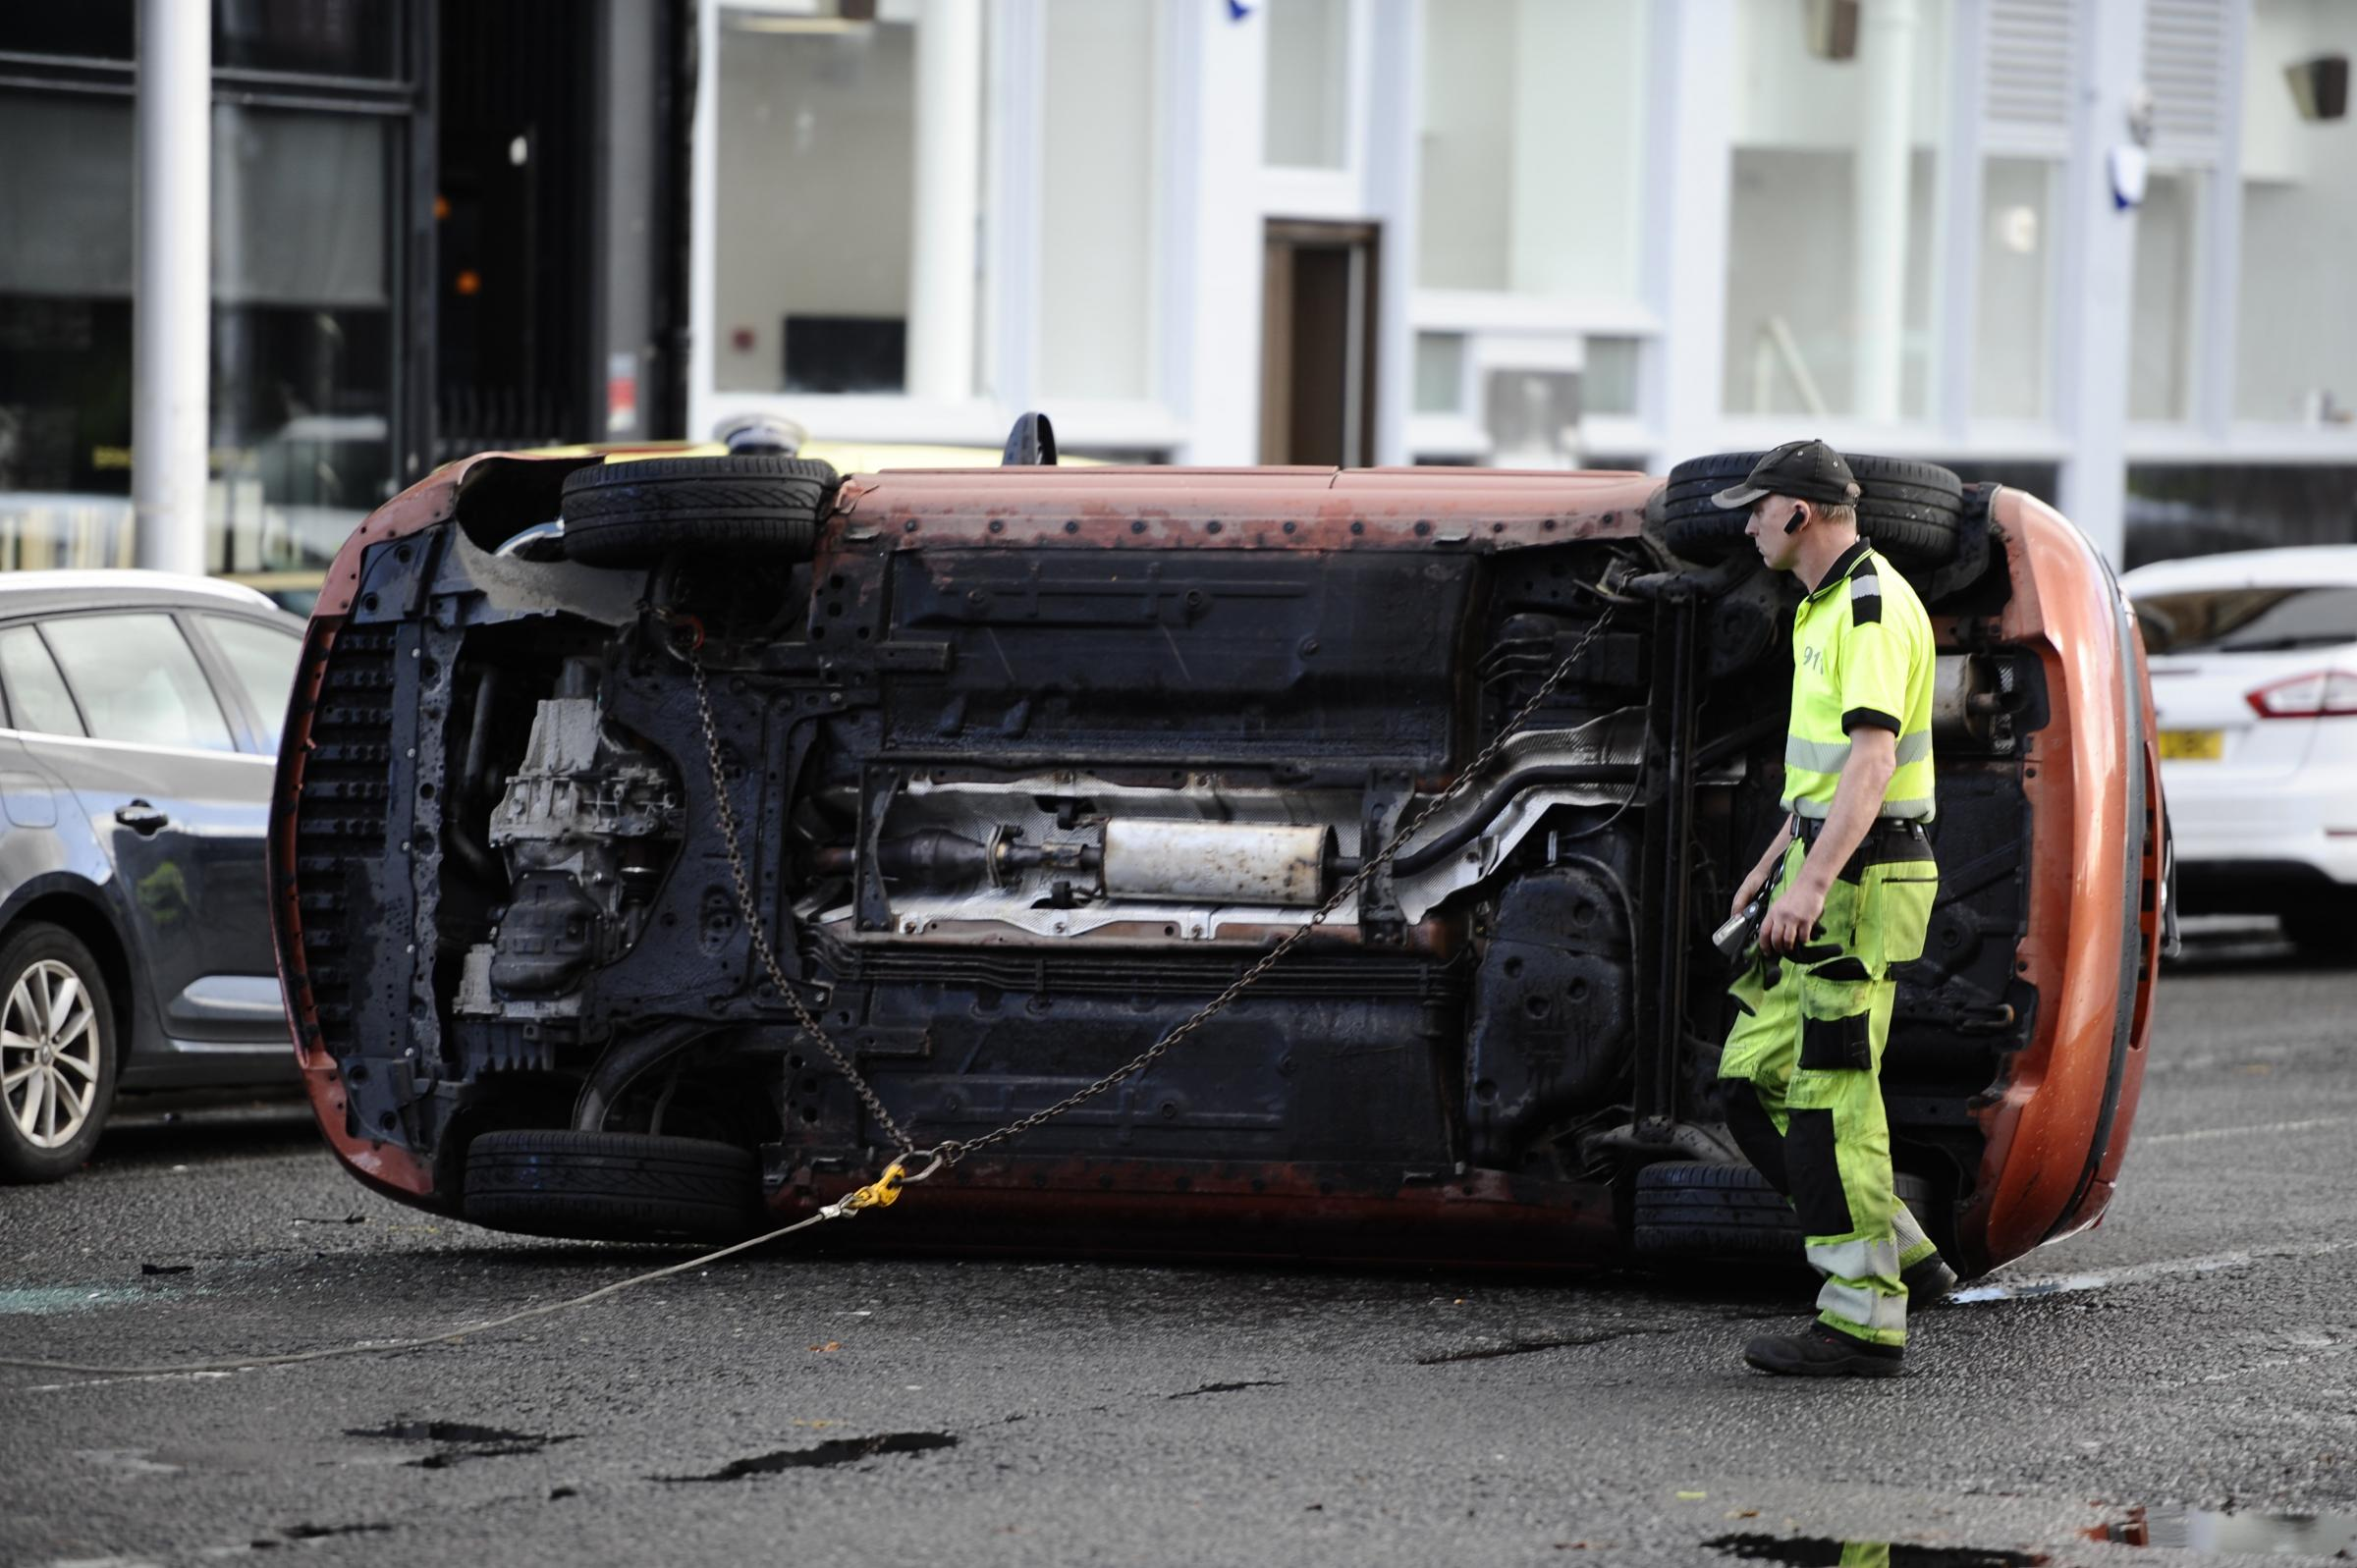 Driver in hospital after car flips near Govan Cross causing road closures